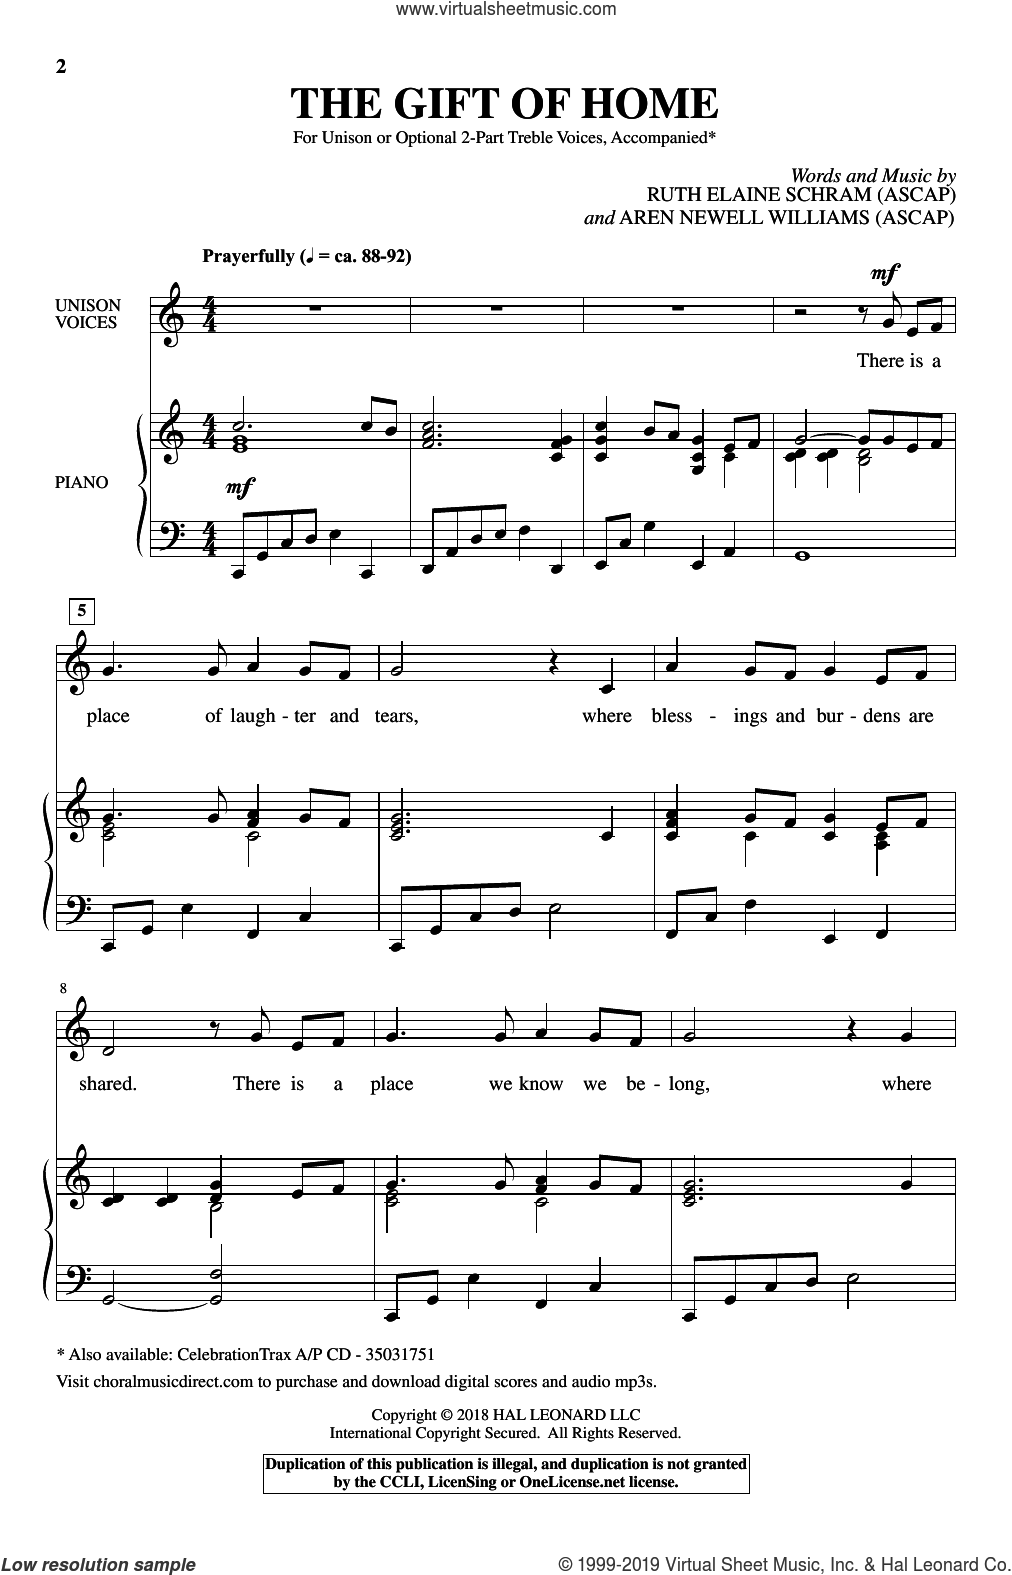 The Gift Of Home sheet music for choir (Unison) by Ruth Elaine Schram and Aren Newell Williams, intermediate skill level